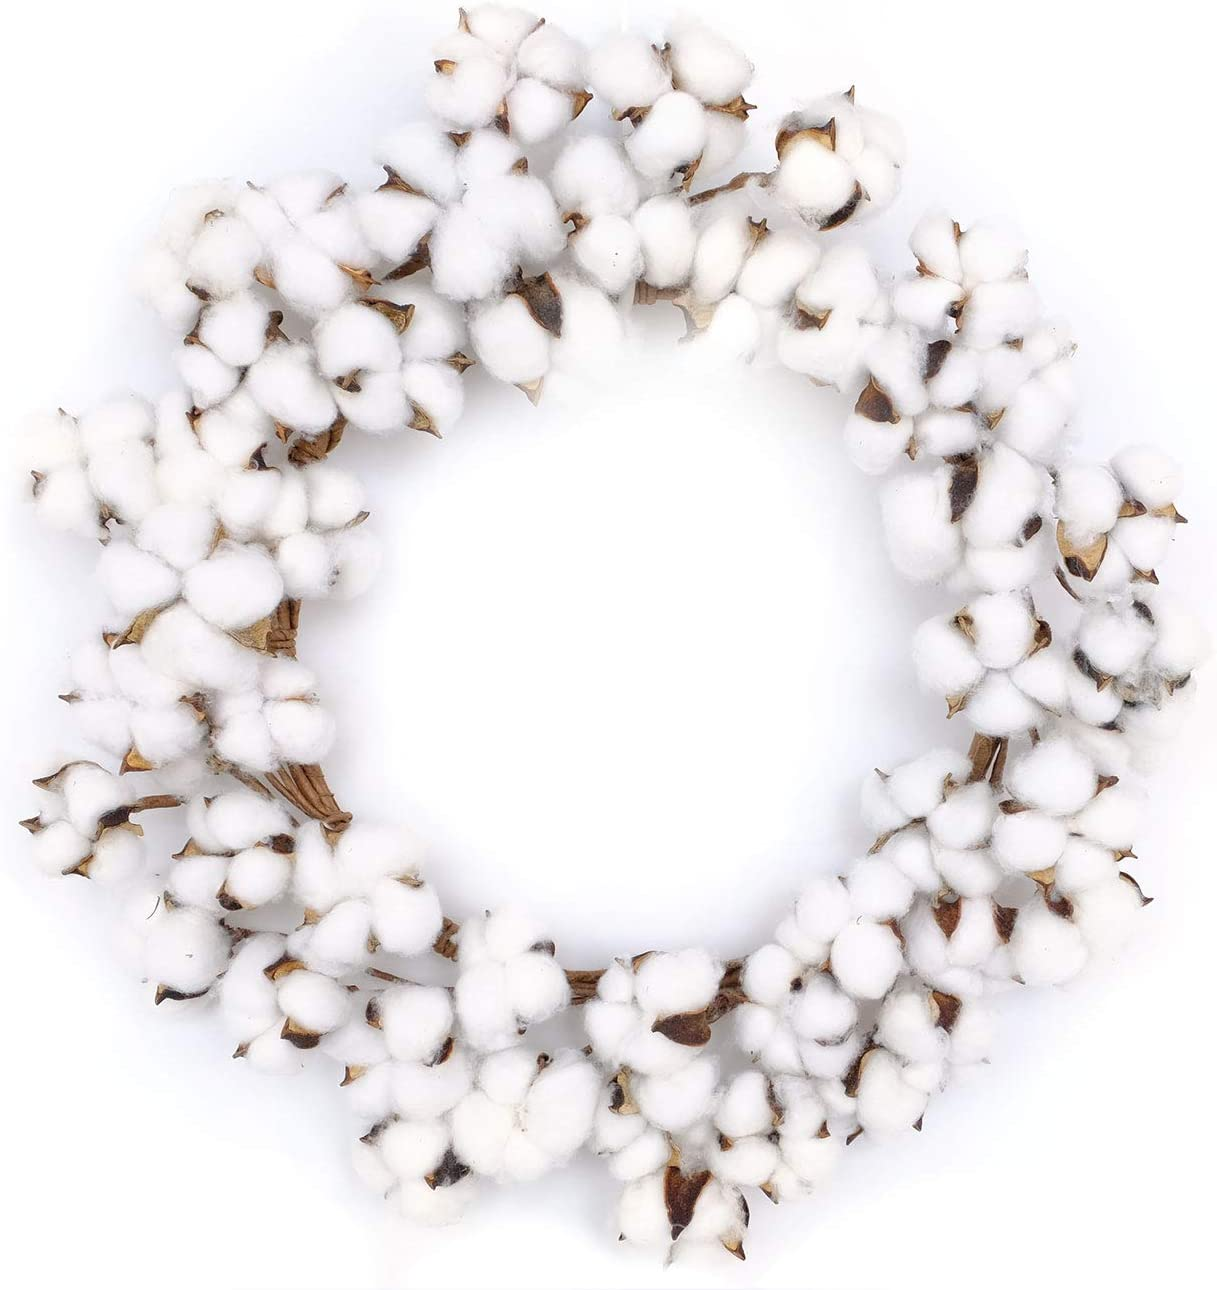 Bibelot 18inch Cotton Wreath Nature Cotton Bolls Farmhouse Decor for Front Door Wall Window Home Office Christmas Festival Hanging Decorations…